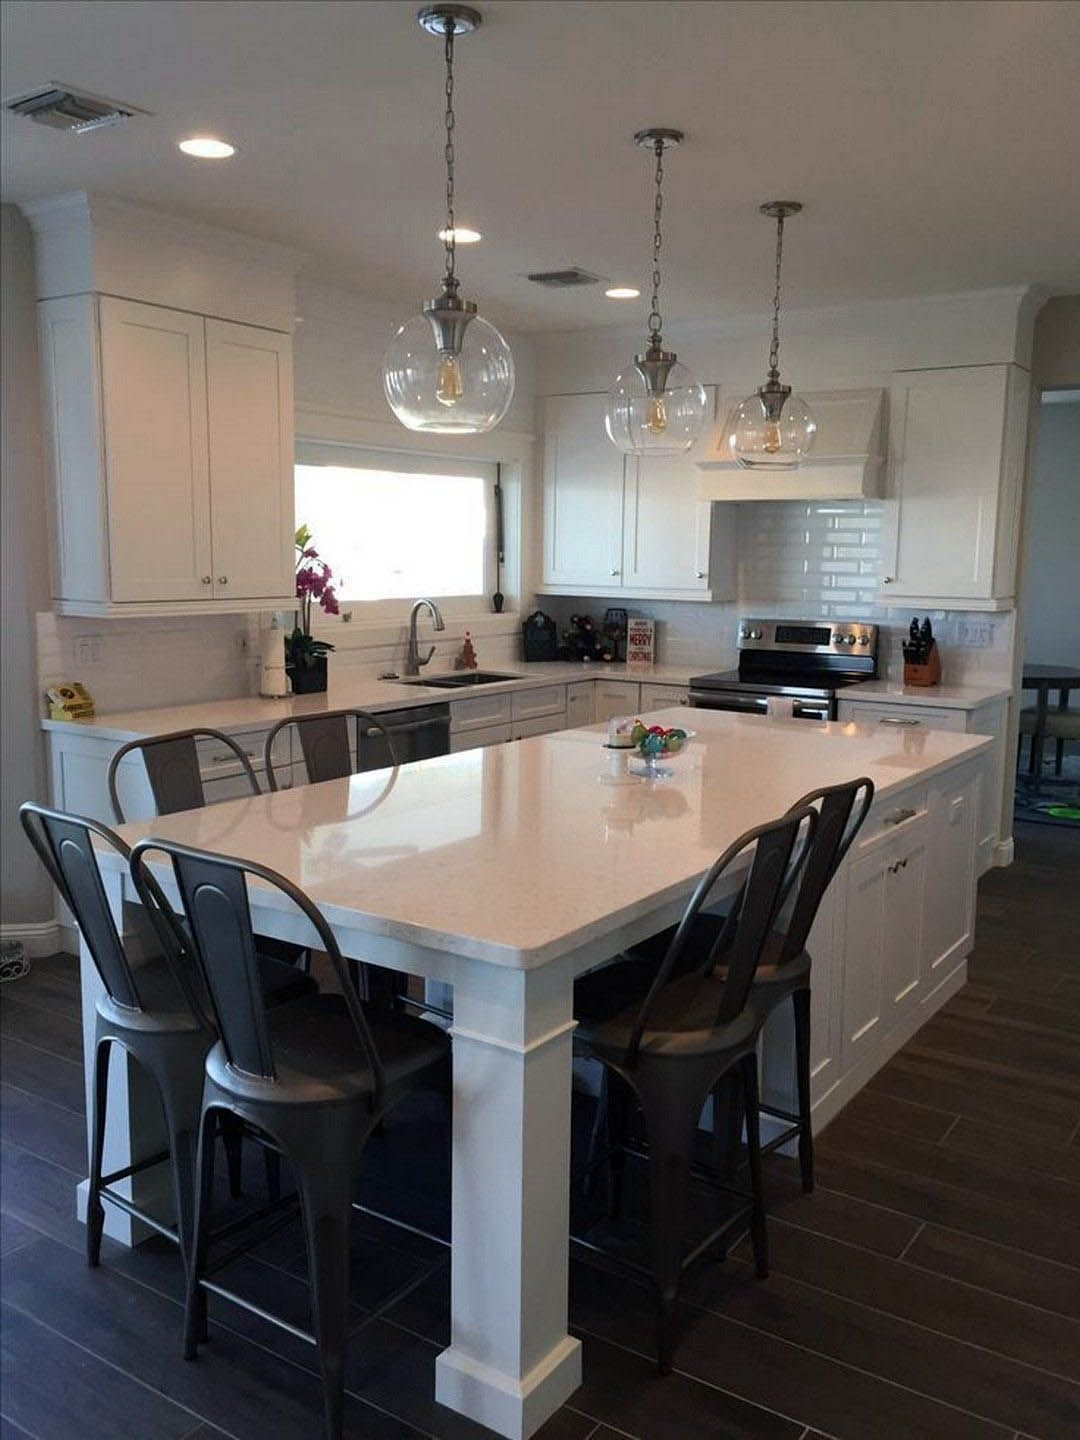 Top 2 Level Kitchen Island With Seating Only In Indoneso Design Modern Kitchen Island Design Kitchen Remodel Small Modern Kitchen Island